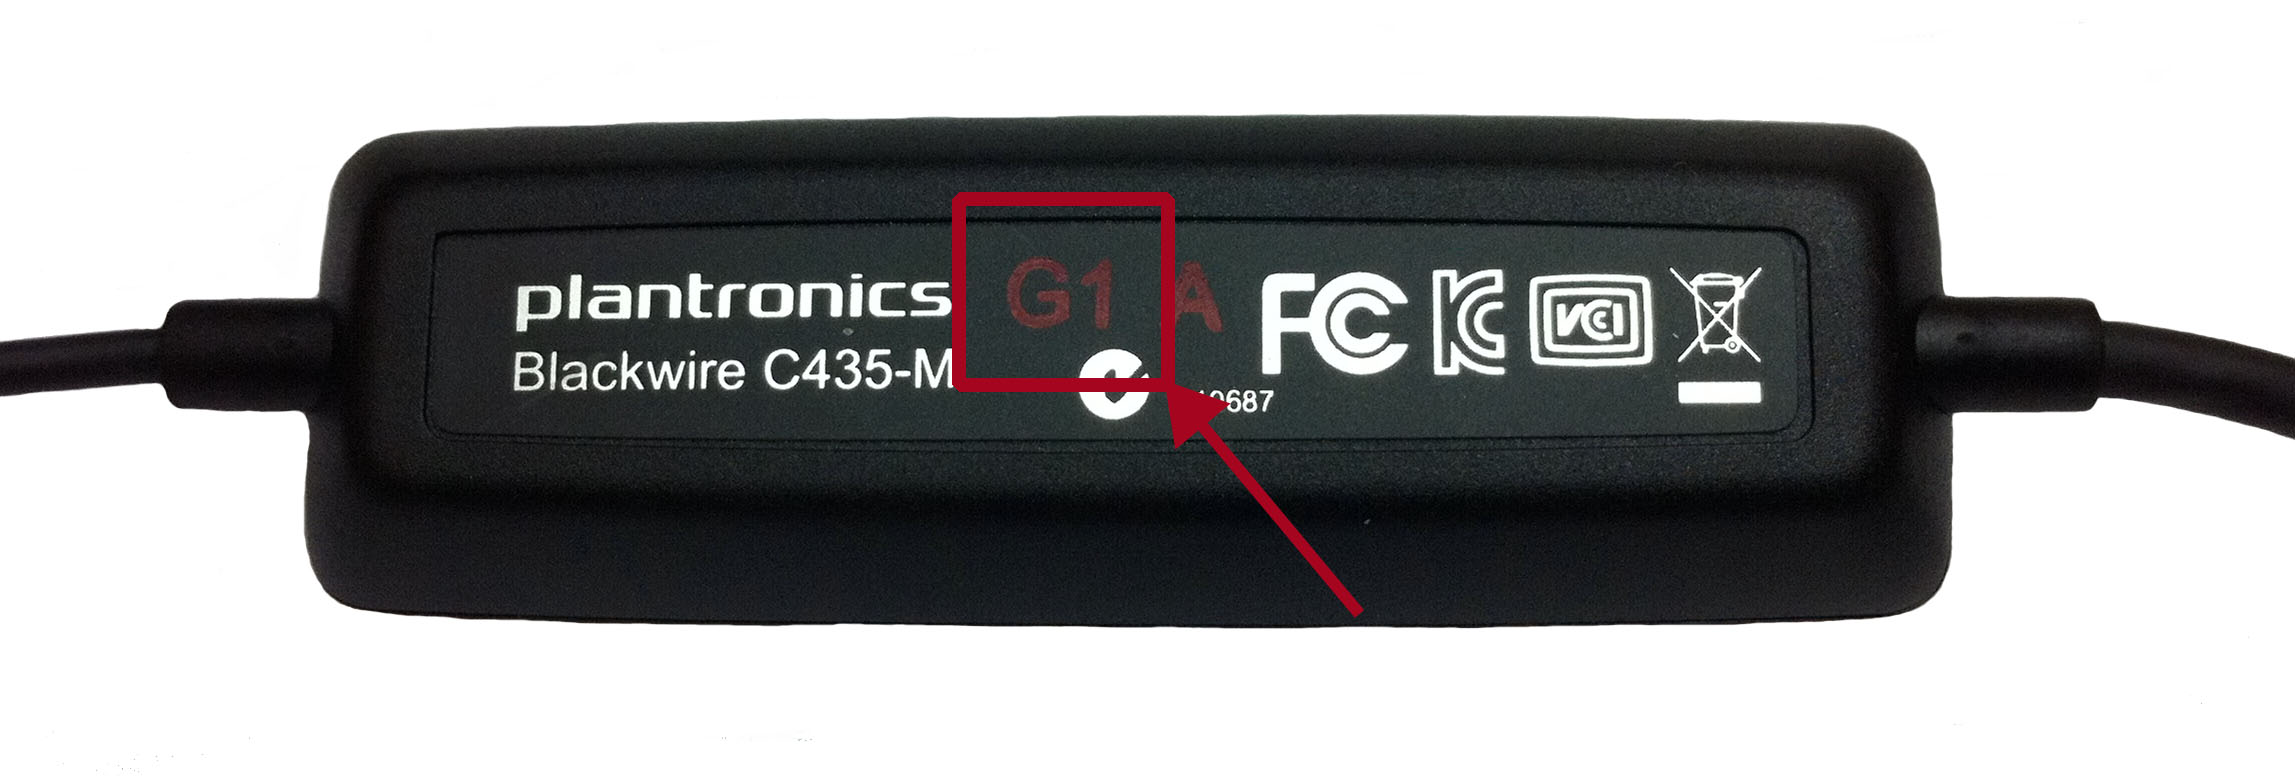 Image of the Blackwire C435 Date Code Location